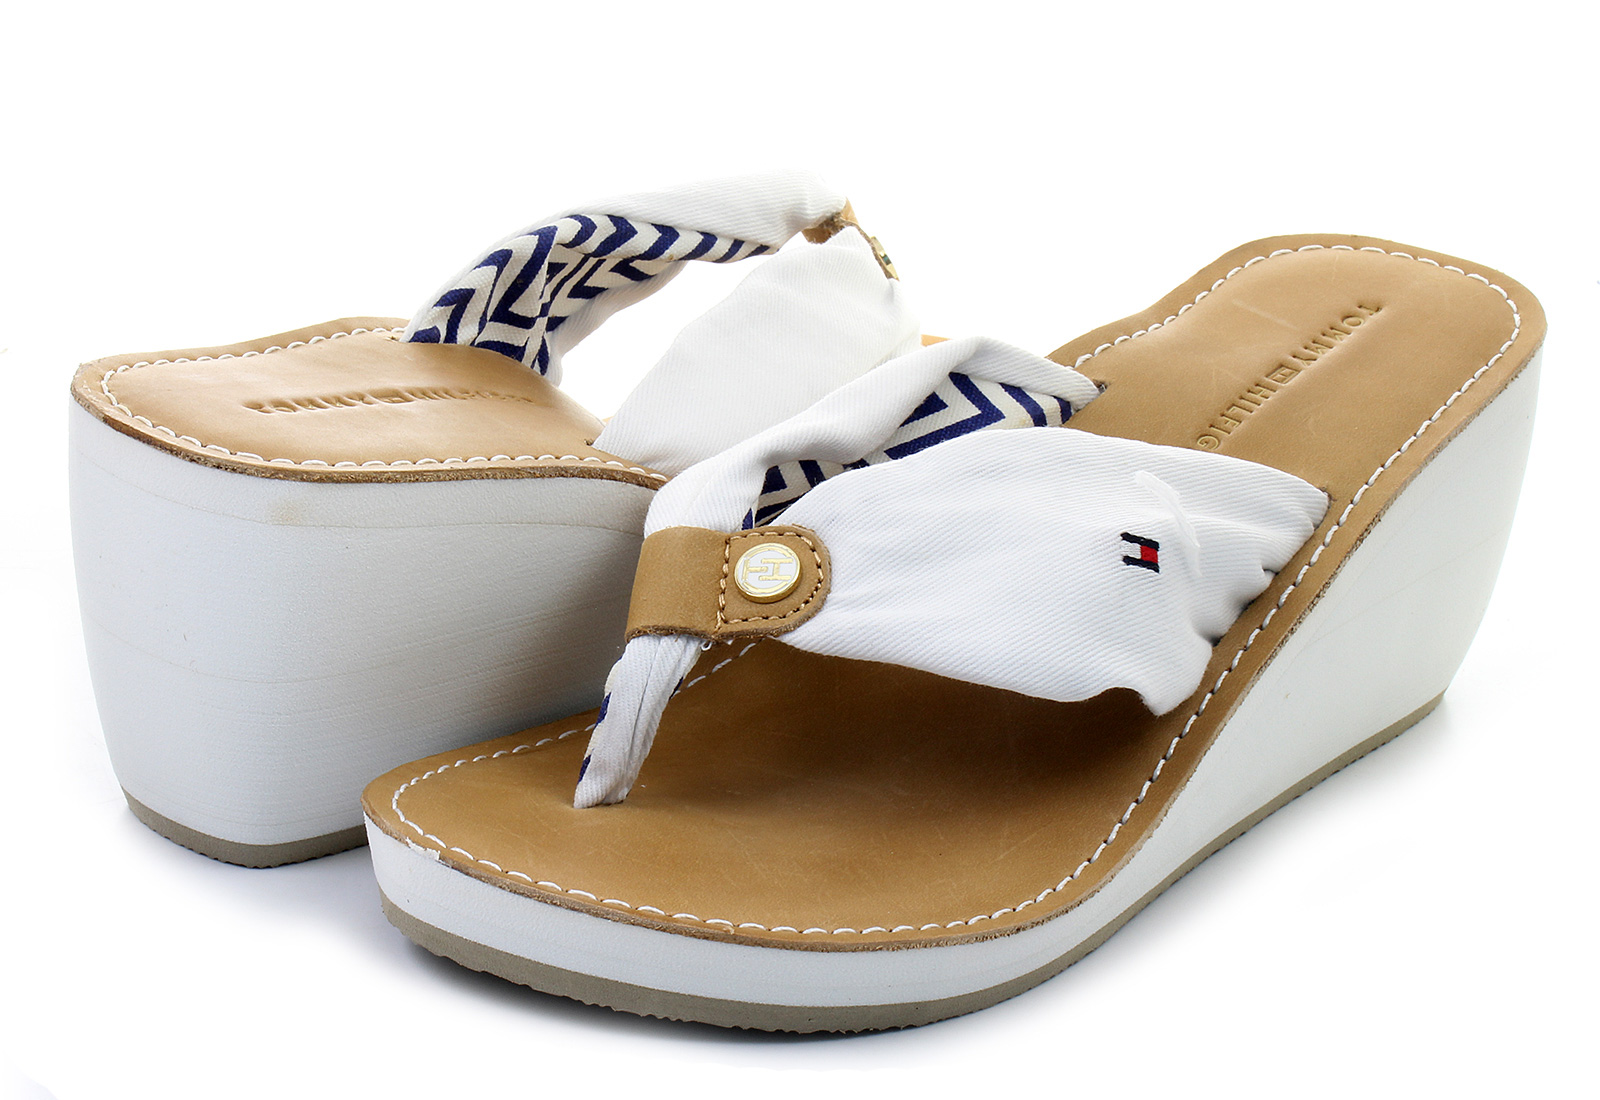 Tommy Hilfiger Slippers - Myriam 9d - 15S-8719-100 - Online shop for ... 9e6d0be906